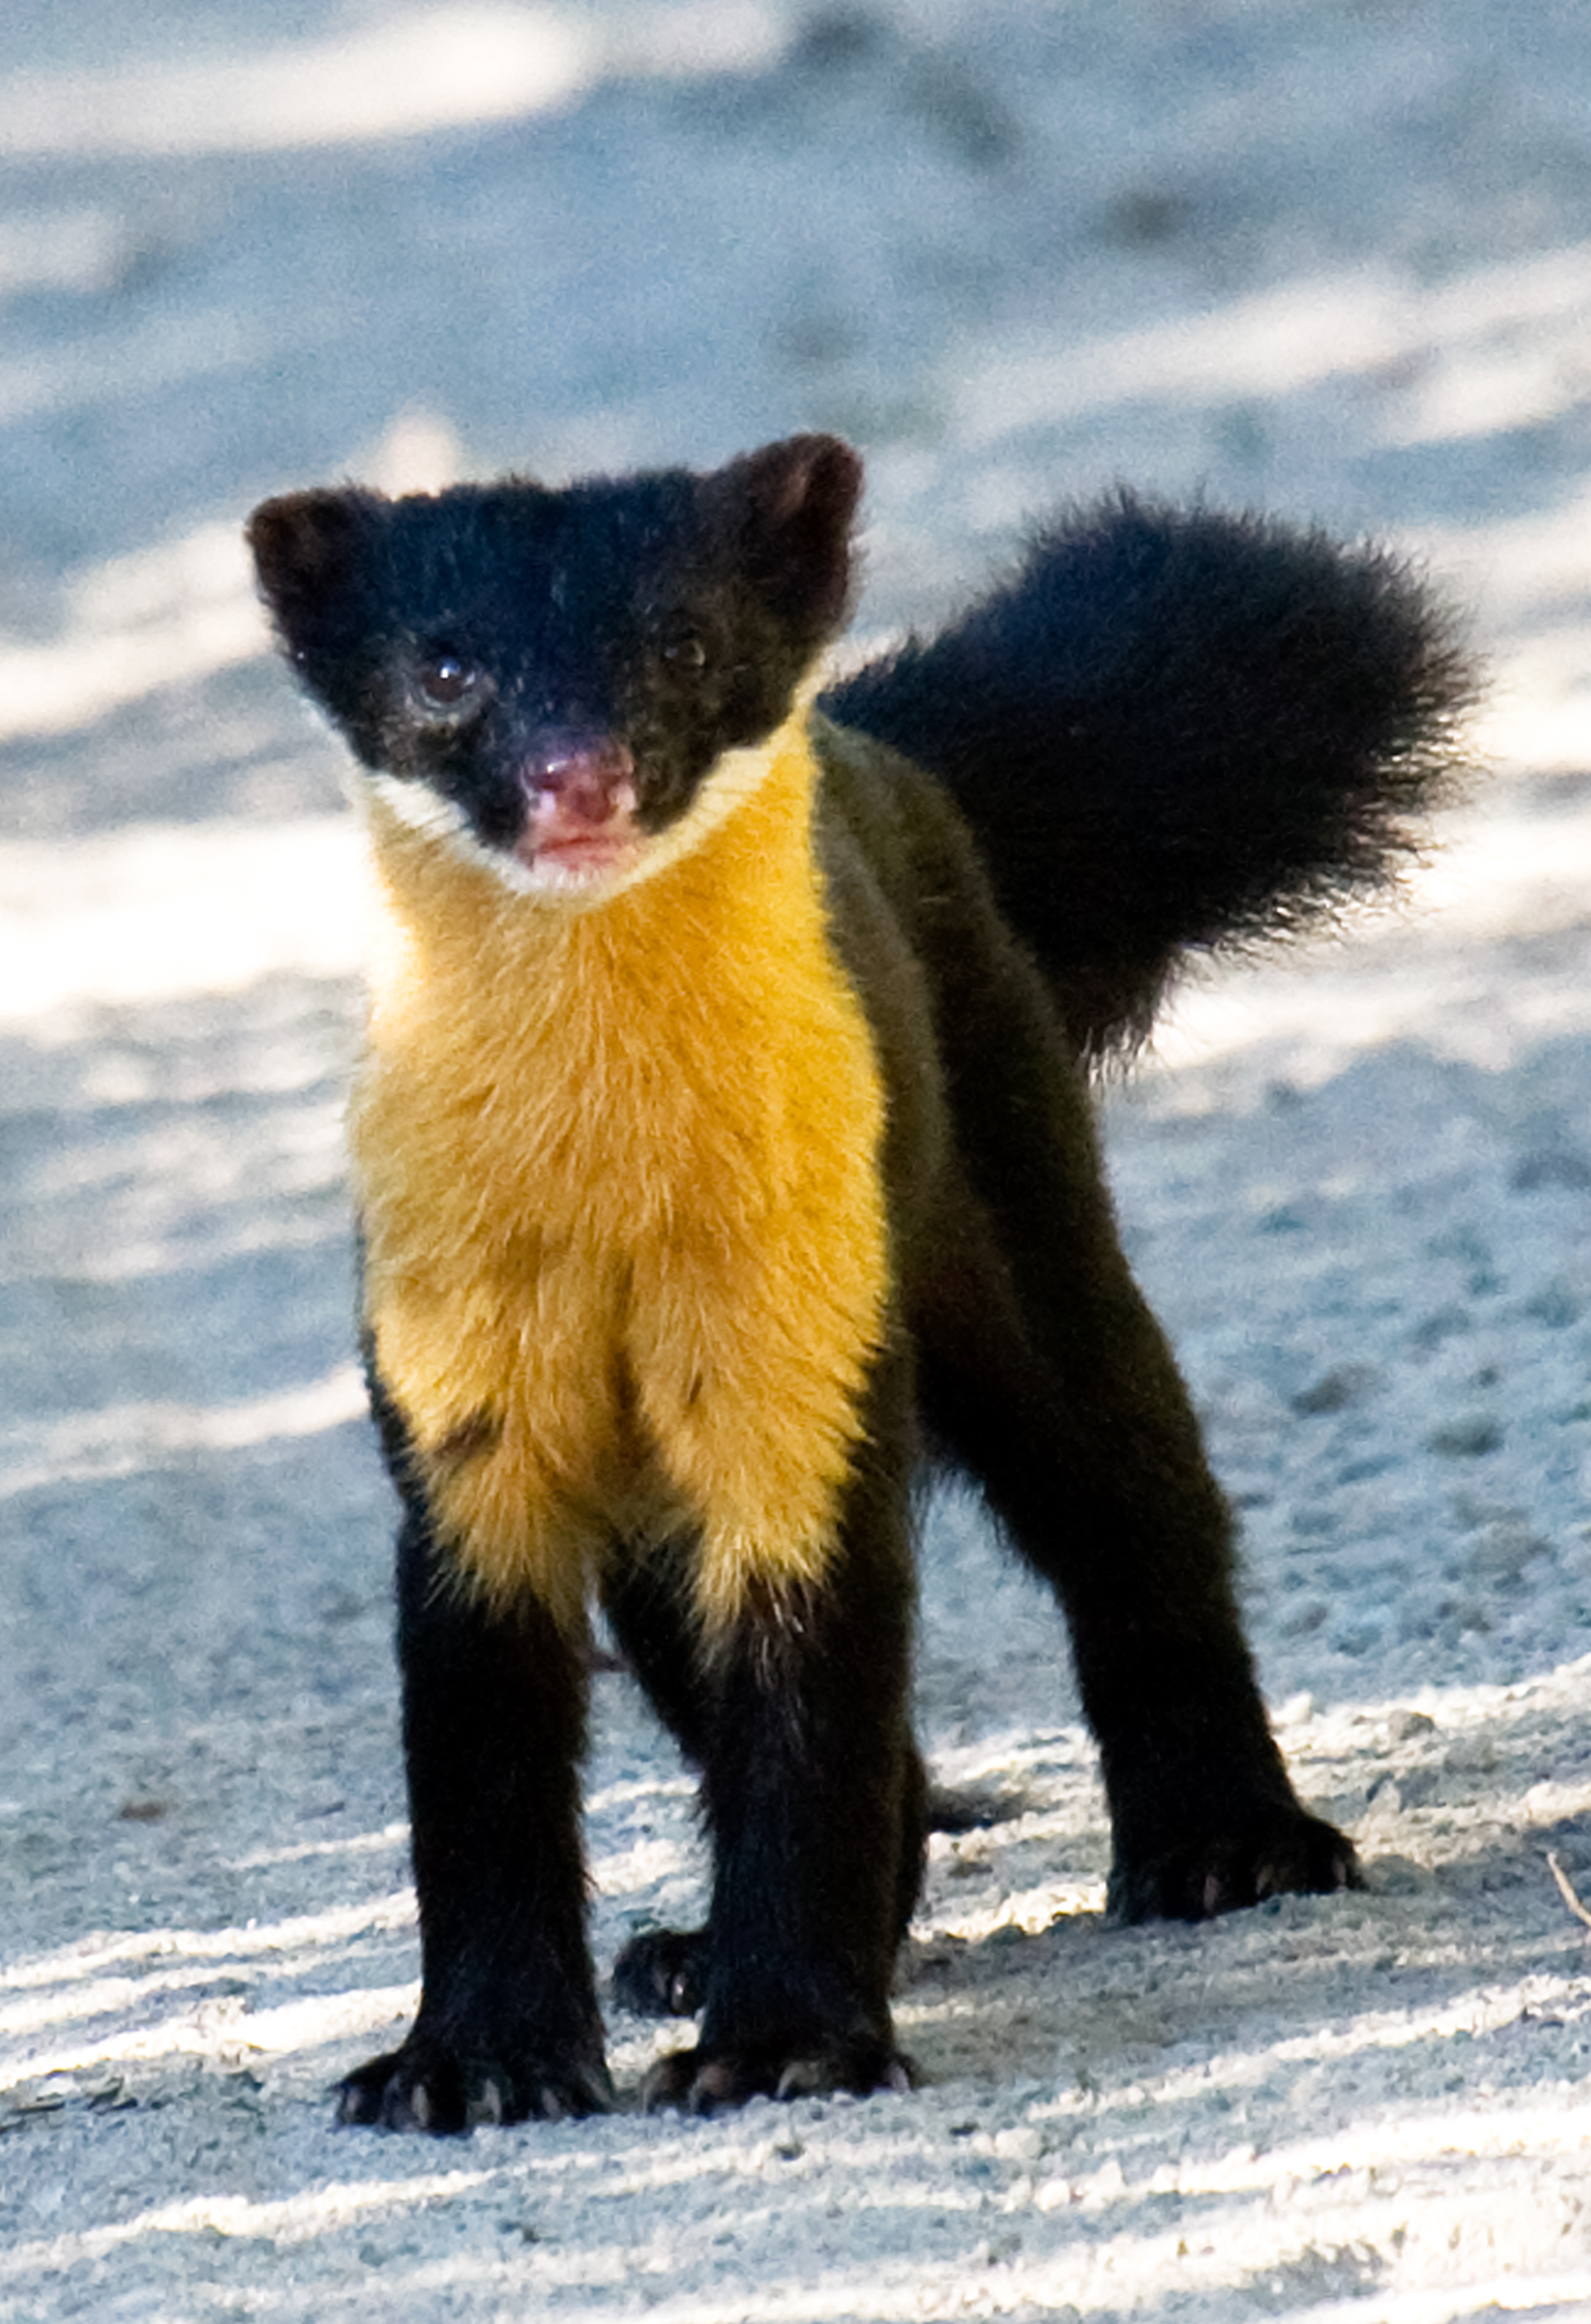 Nilgiri marten native to southern India